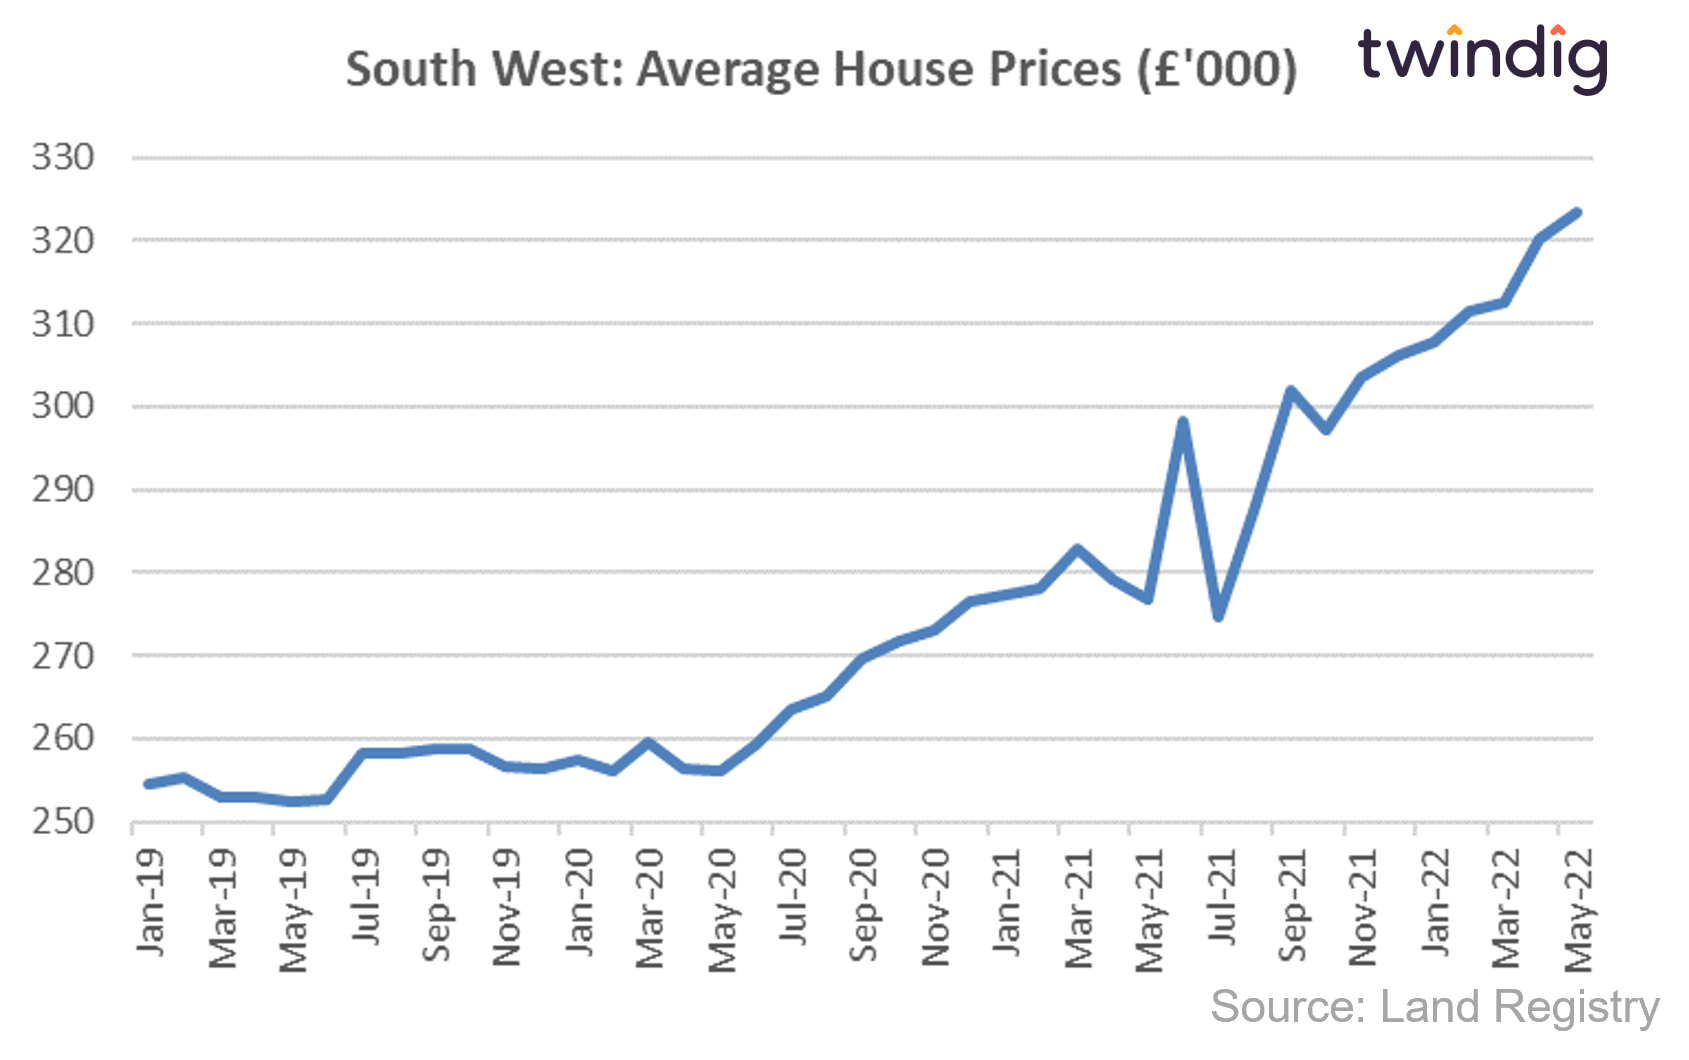 House price graph chart showing average house prices in the South West